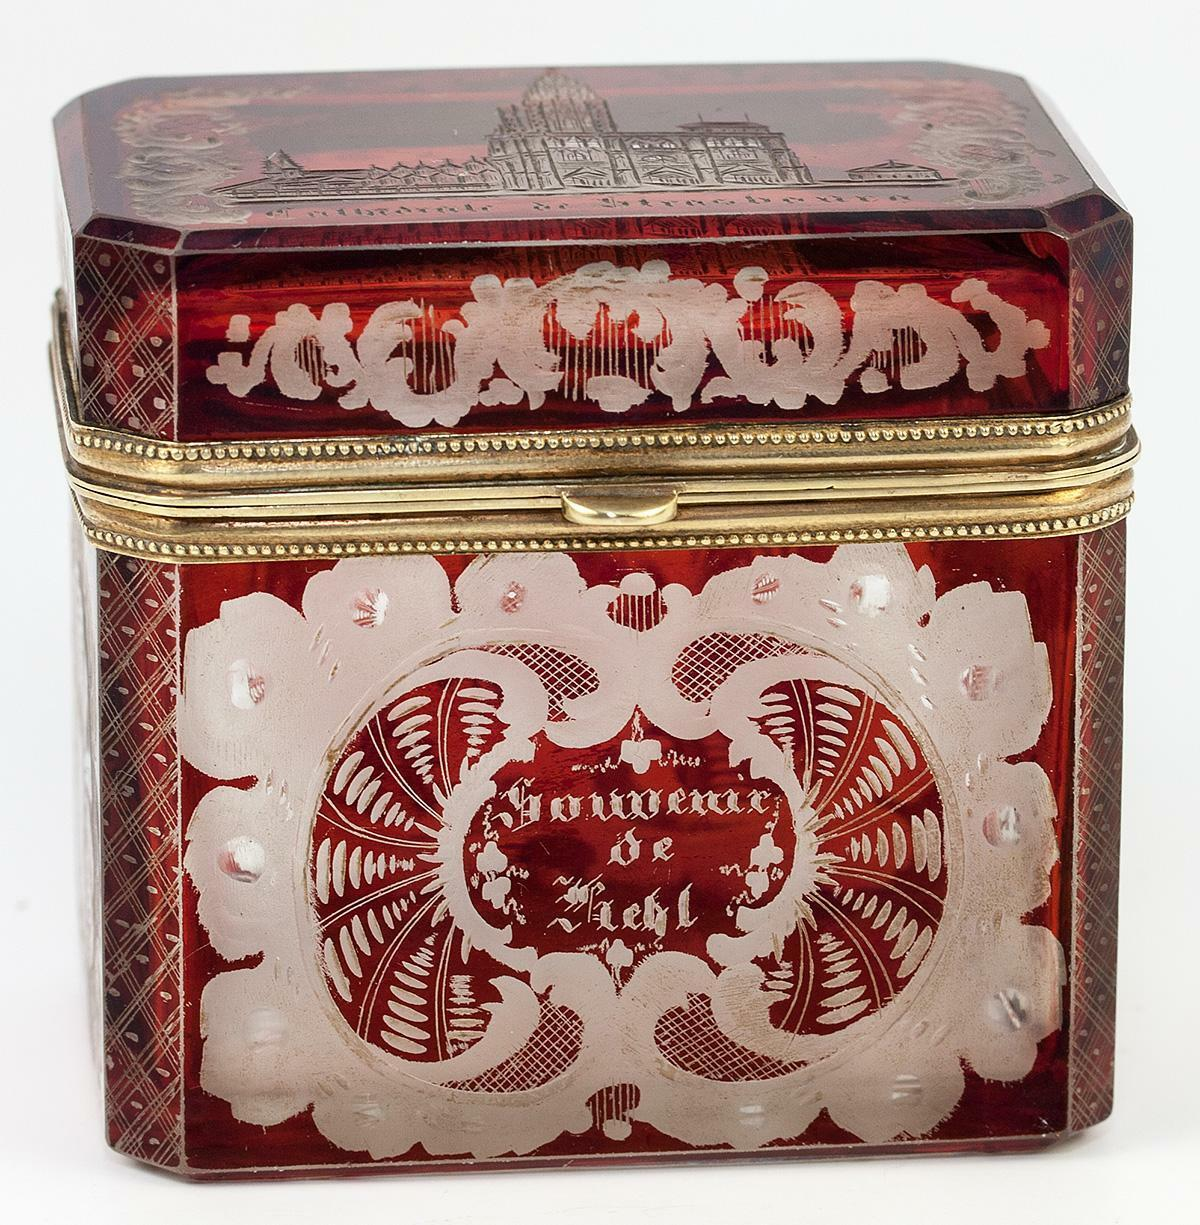 Antique Sugar Caddy Casket, Box: Bohemian or Egermann Spa Glass Souvenir, Gothic